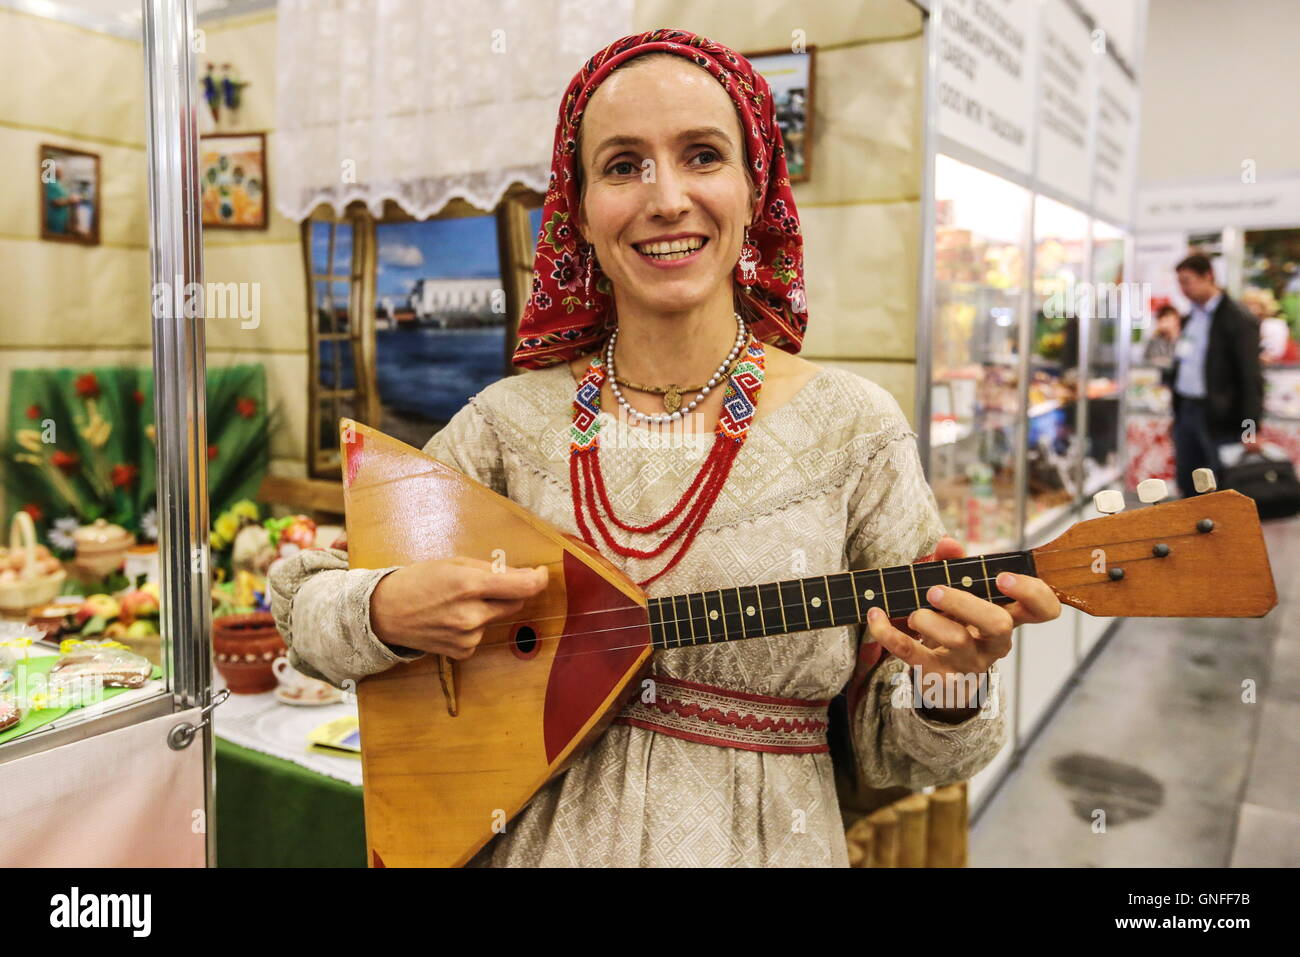 ST PETERSBURG, RUSSIA - AUGUST 30, 2016: A woman in a national costume plays the balalaika at the 2016 Agrorus international - Stock Image